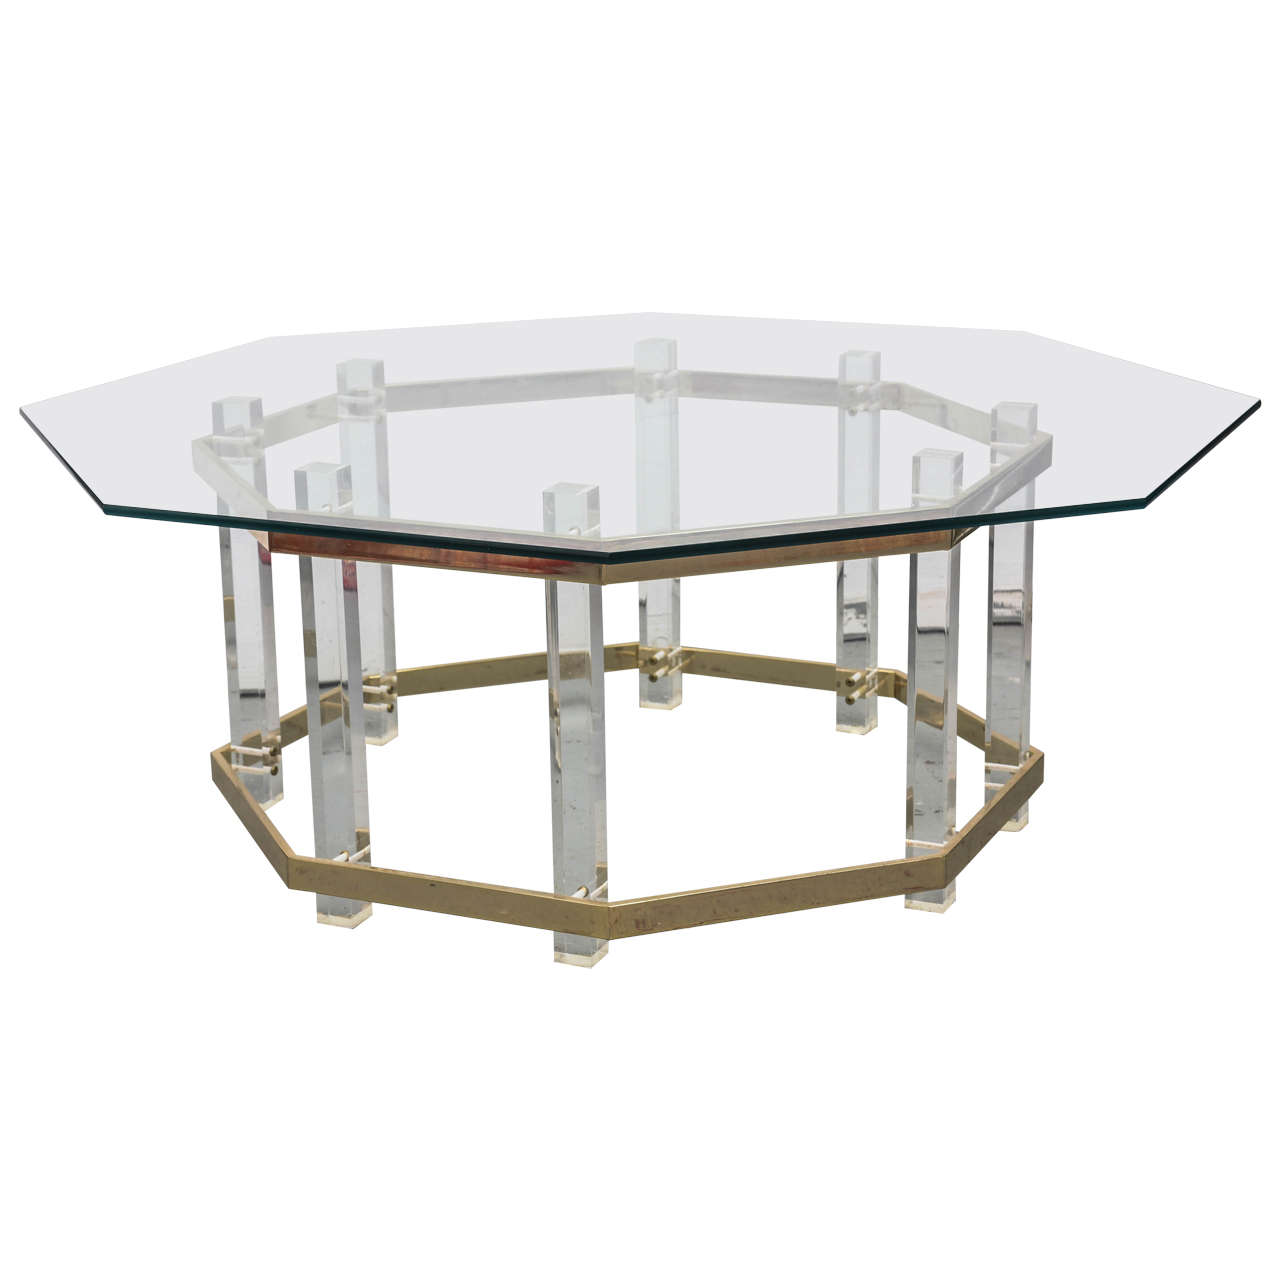 Large lucite brass and glass hollis jones coffee table for Lucite and brass coffee table